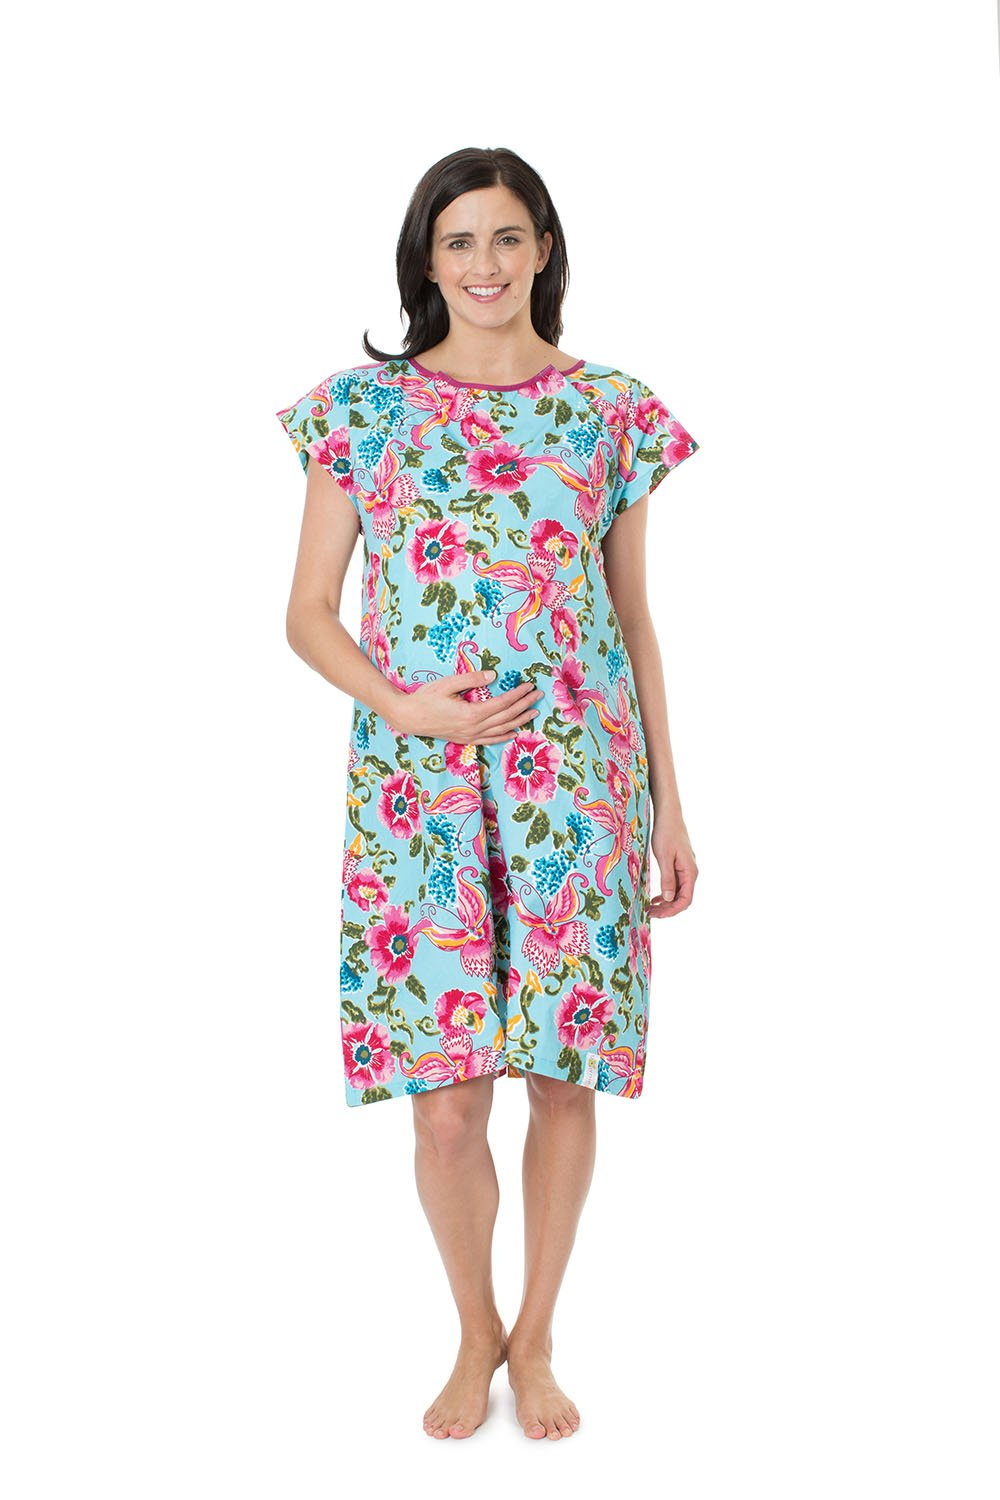 Isabelle Gownie - Maternity Delivery Hospital Gown Floral Baby ...